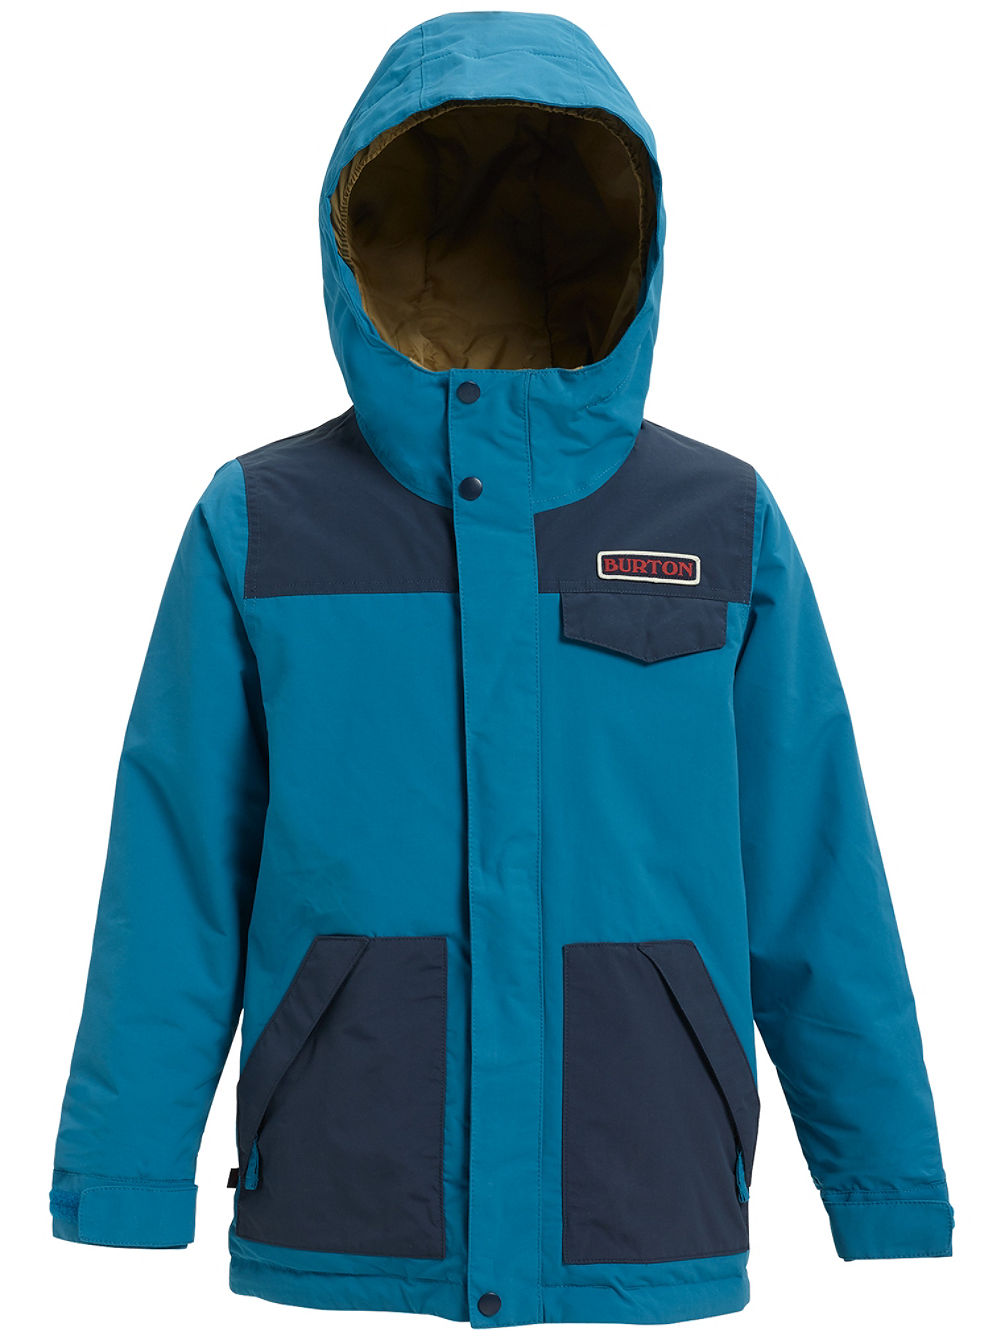 21b9c399c Buy Burton Dugout Jacket online at blue-tomato.com